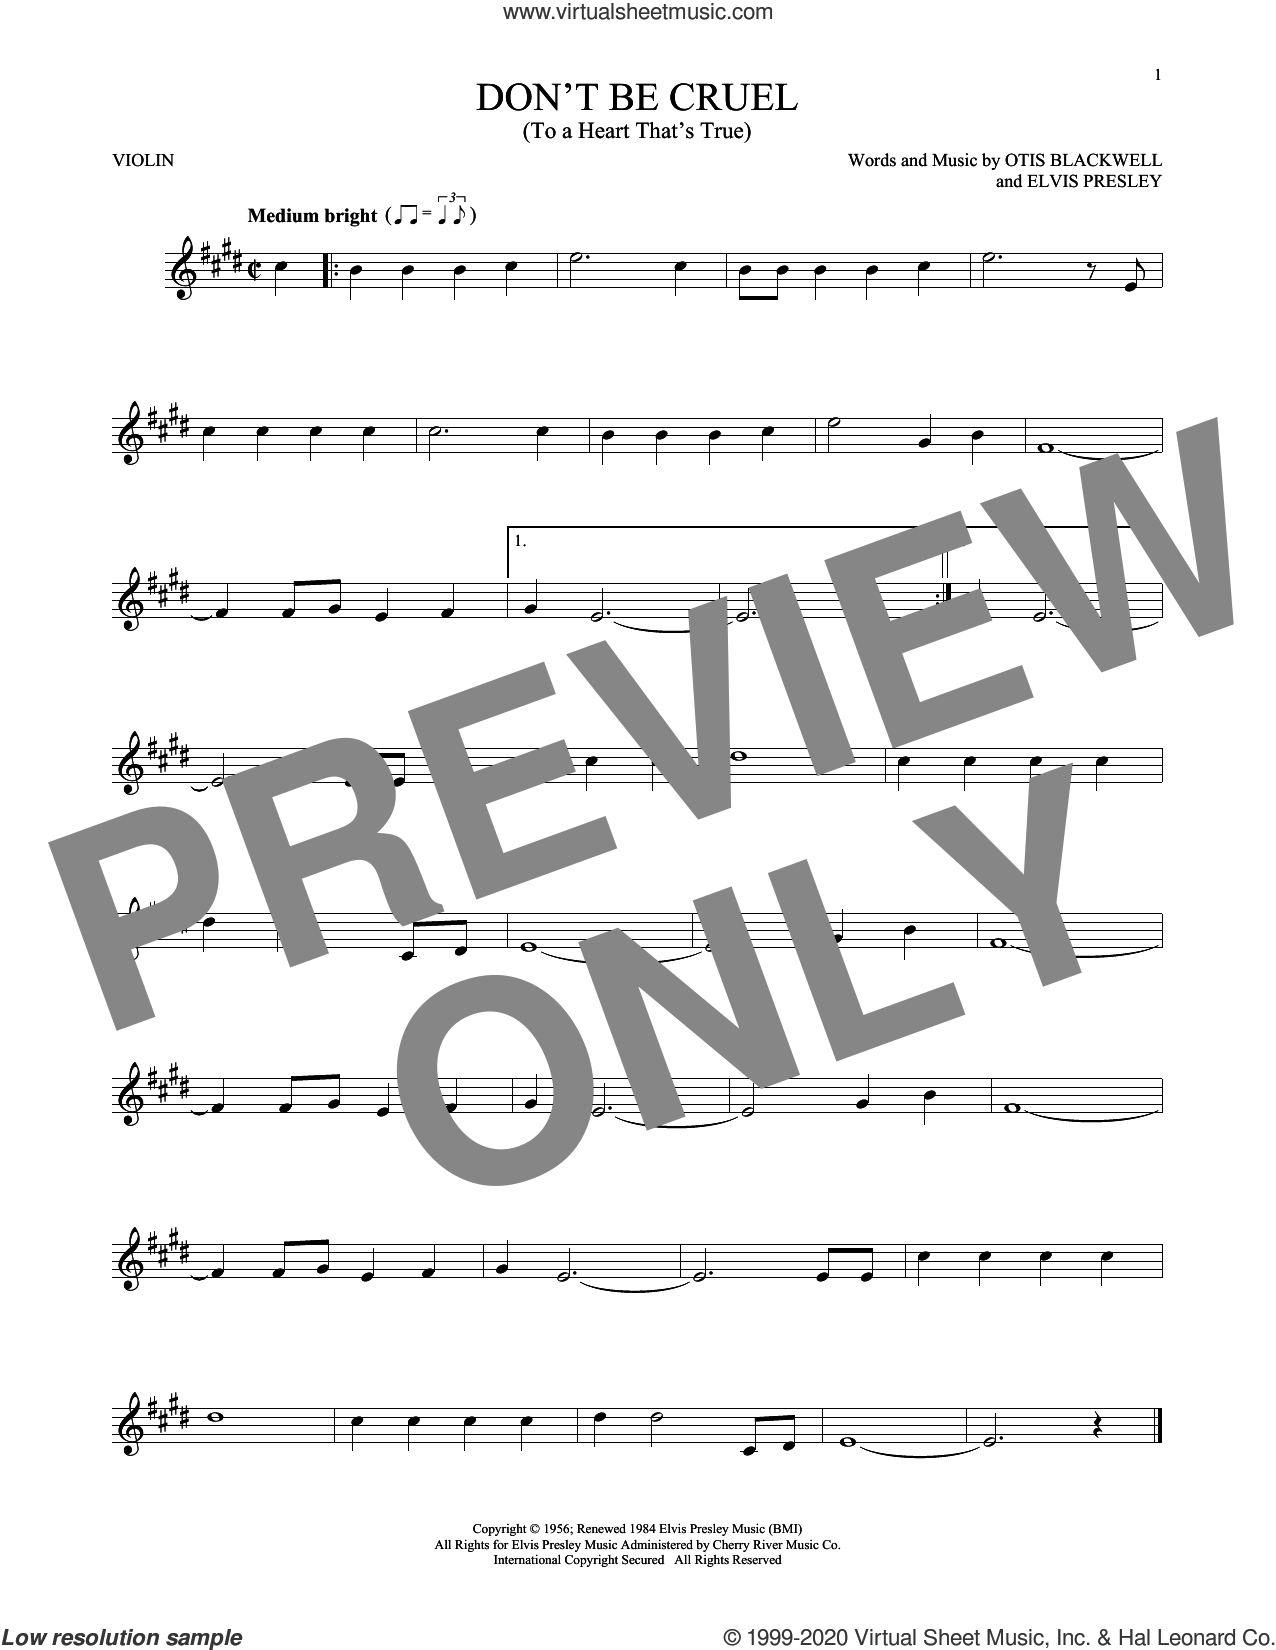 Don't Be Cruel (To A Heart That's True) sheet music for violin solo by Elvis Presley and Otis Blackwell, intermediate skill level